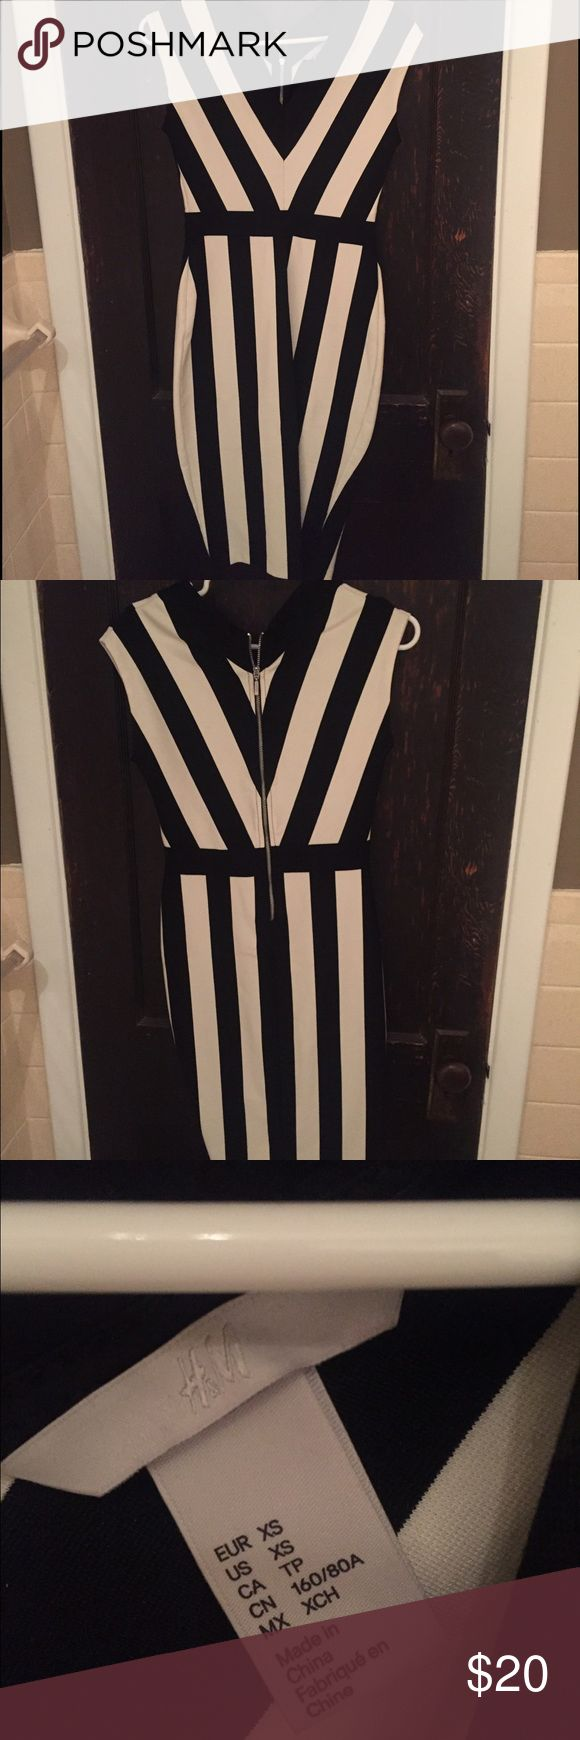 H&M V-neck black and white bodycon dress Awesome dress worn once! Tons of compliments. Super edgy and fun! In great condition! H&M Dresses Midi